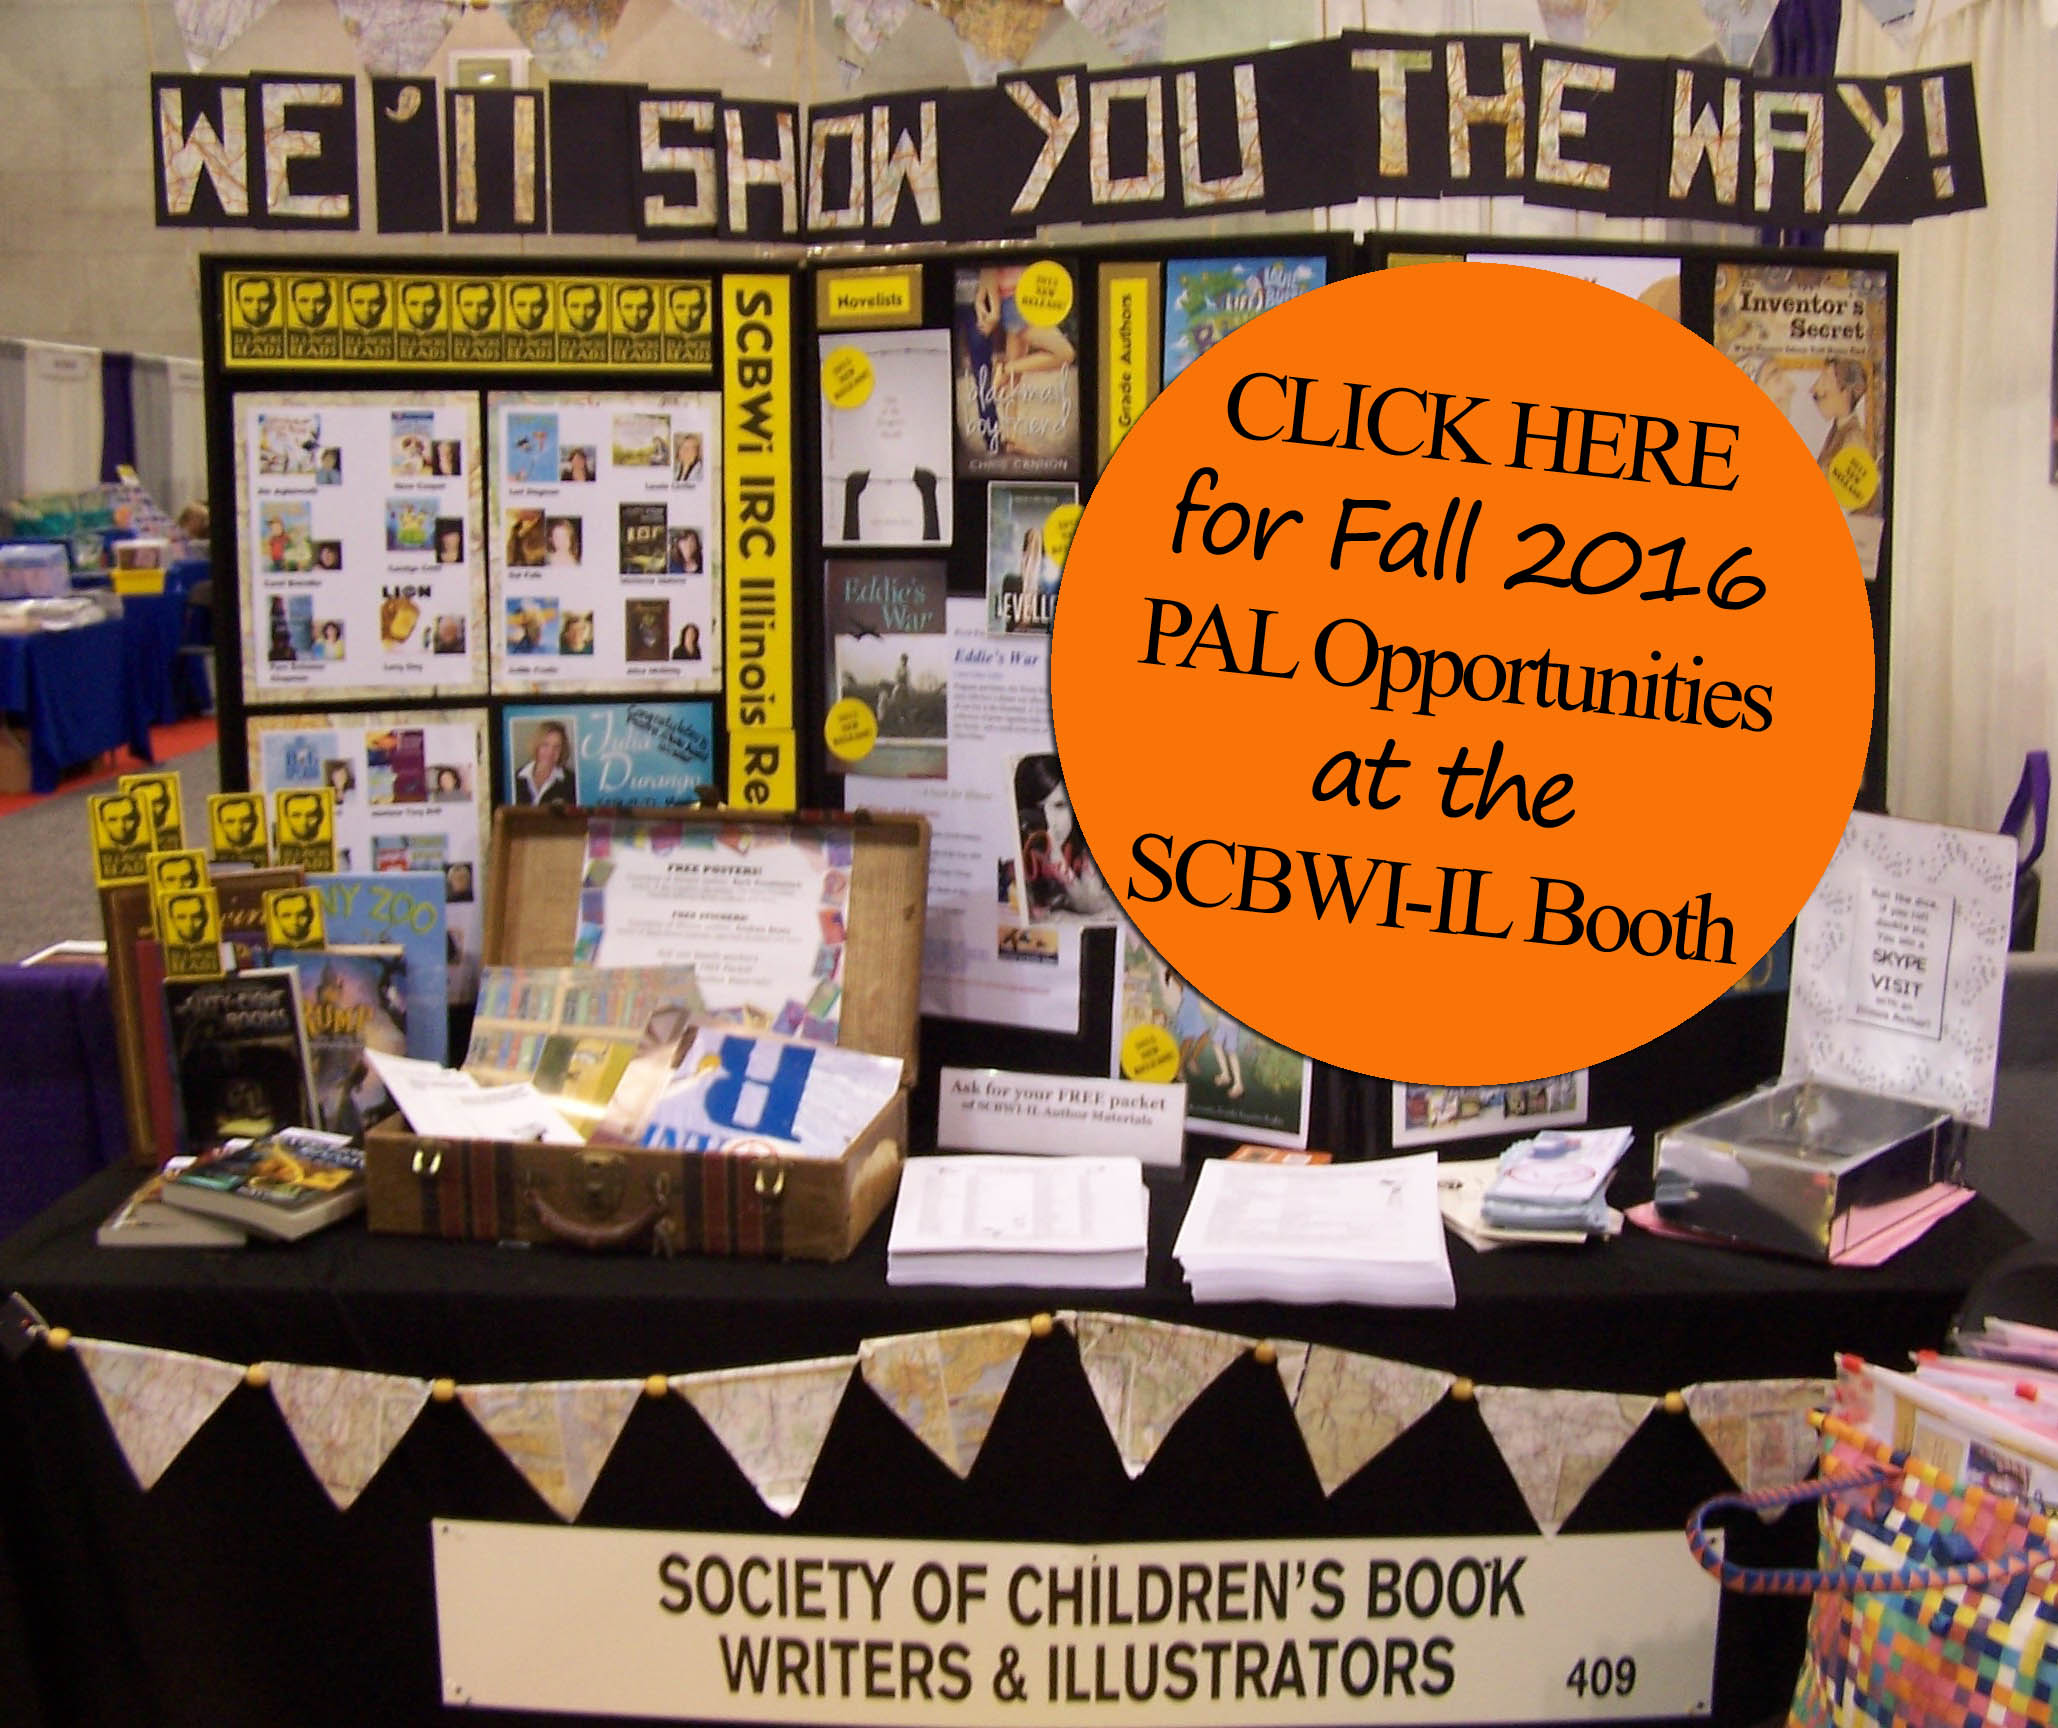 SCBWI-IL Promotional Booth teams are making plans to WOW Illinois teachers and school librarians at their annual conferences: Illinois Reading Conference, Sept 29-Oct 1 and Illinois School Library and Media Association, Nov. 3-5  SCBWI-IL plans to showcase a display of our recently published (2014-2016) PAL books. In addition we will bundle and hand out posters, flyers, postcards or brochures you have to promote your books and your school/library visits/skypes. We accept promo materials from any PAL published authors/illustrators, not just the most recently published.   Want to sign your PAL books and promote yourself at ISLMA? Contact Dawn Pennacchia dawn@ideahappy.com